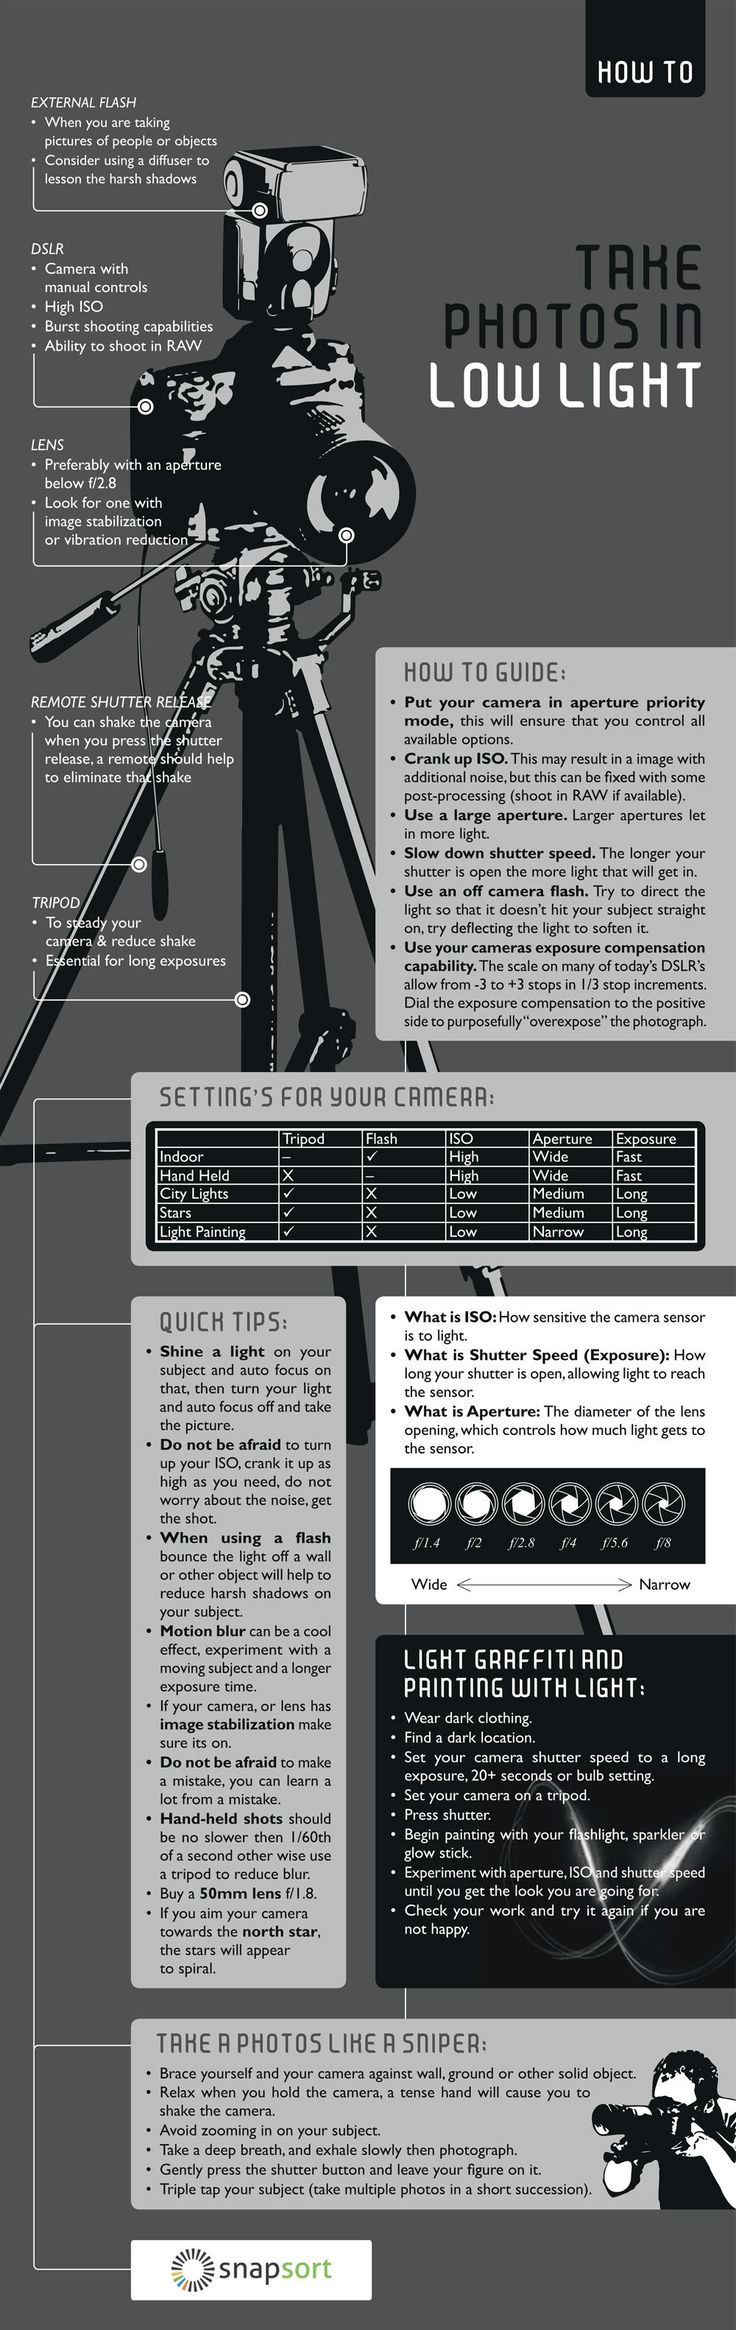 Cheat Sheet: What Gear and Settings to Use for Low Light Photography